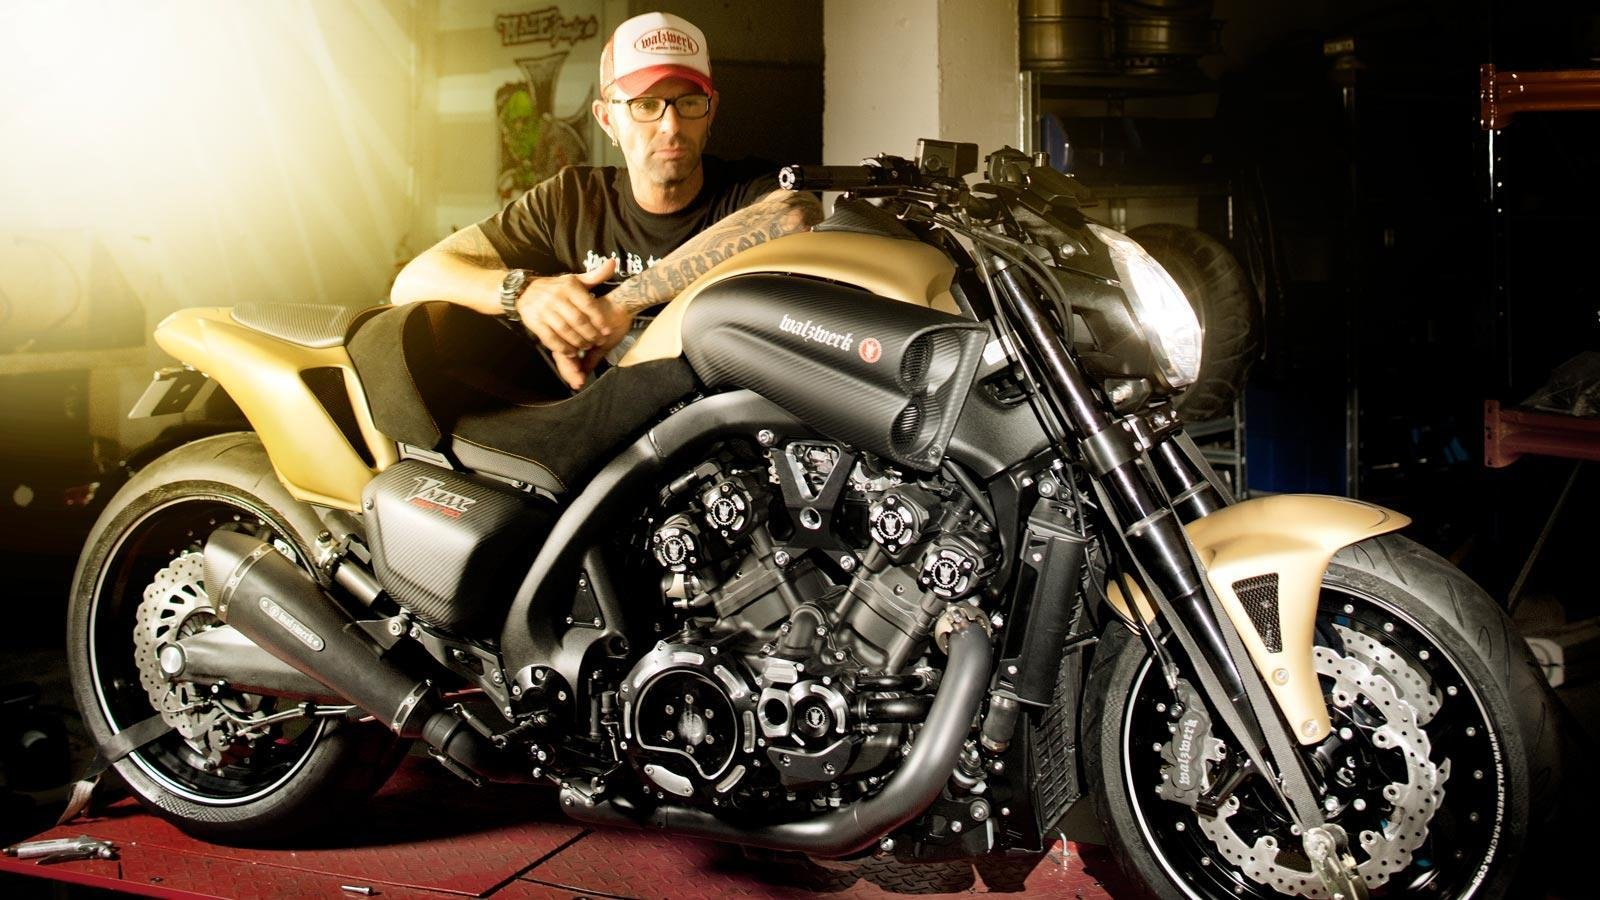 2012 yamaha v max hyper modified by marcus walz picture 460005 motorcycle review top speed. Black Bedroom Furniture Sets. Home Design Ideas